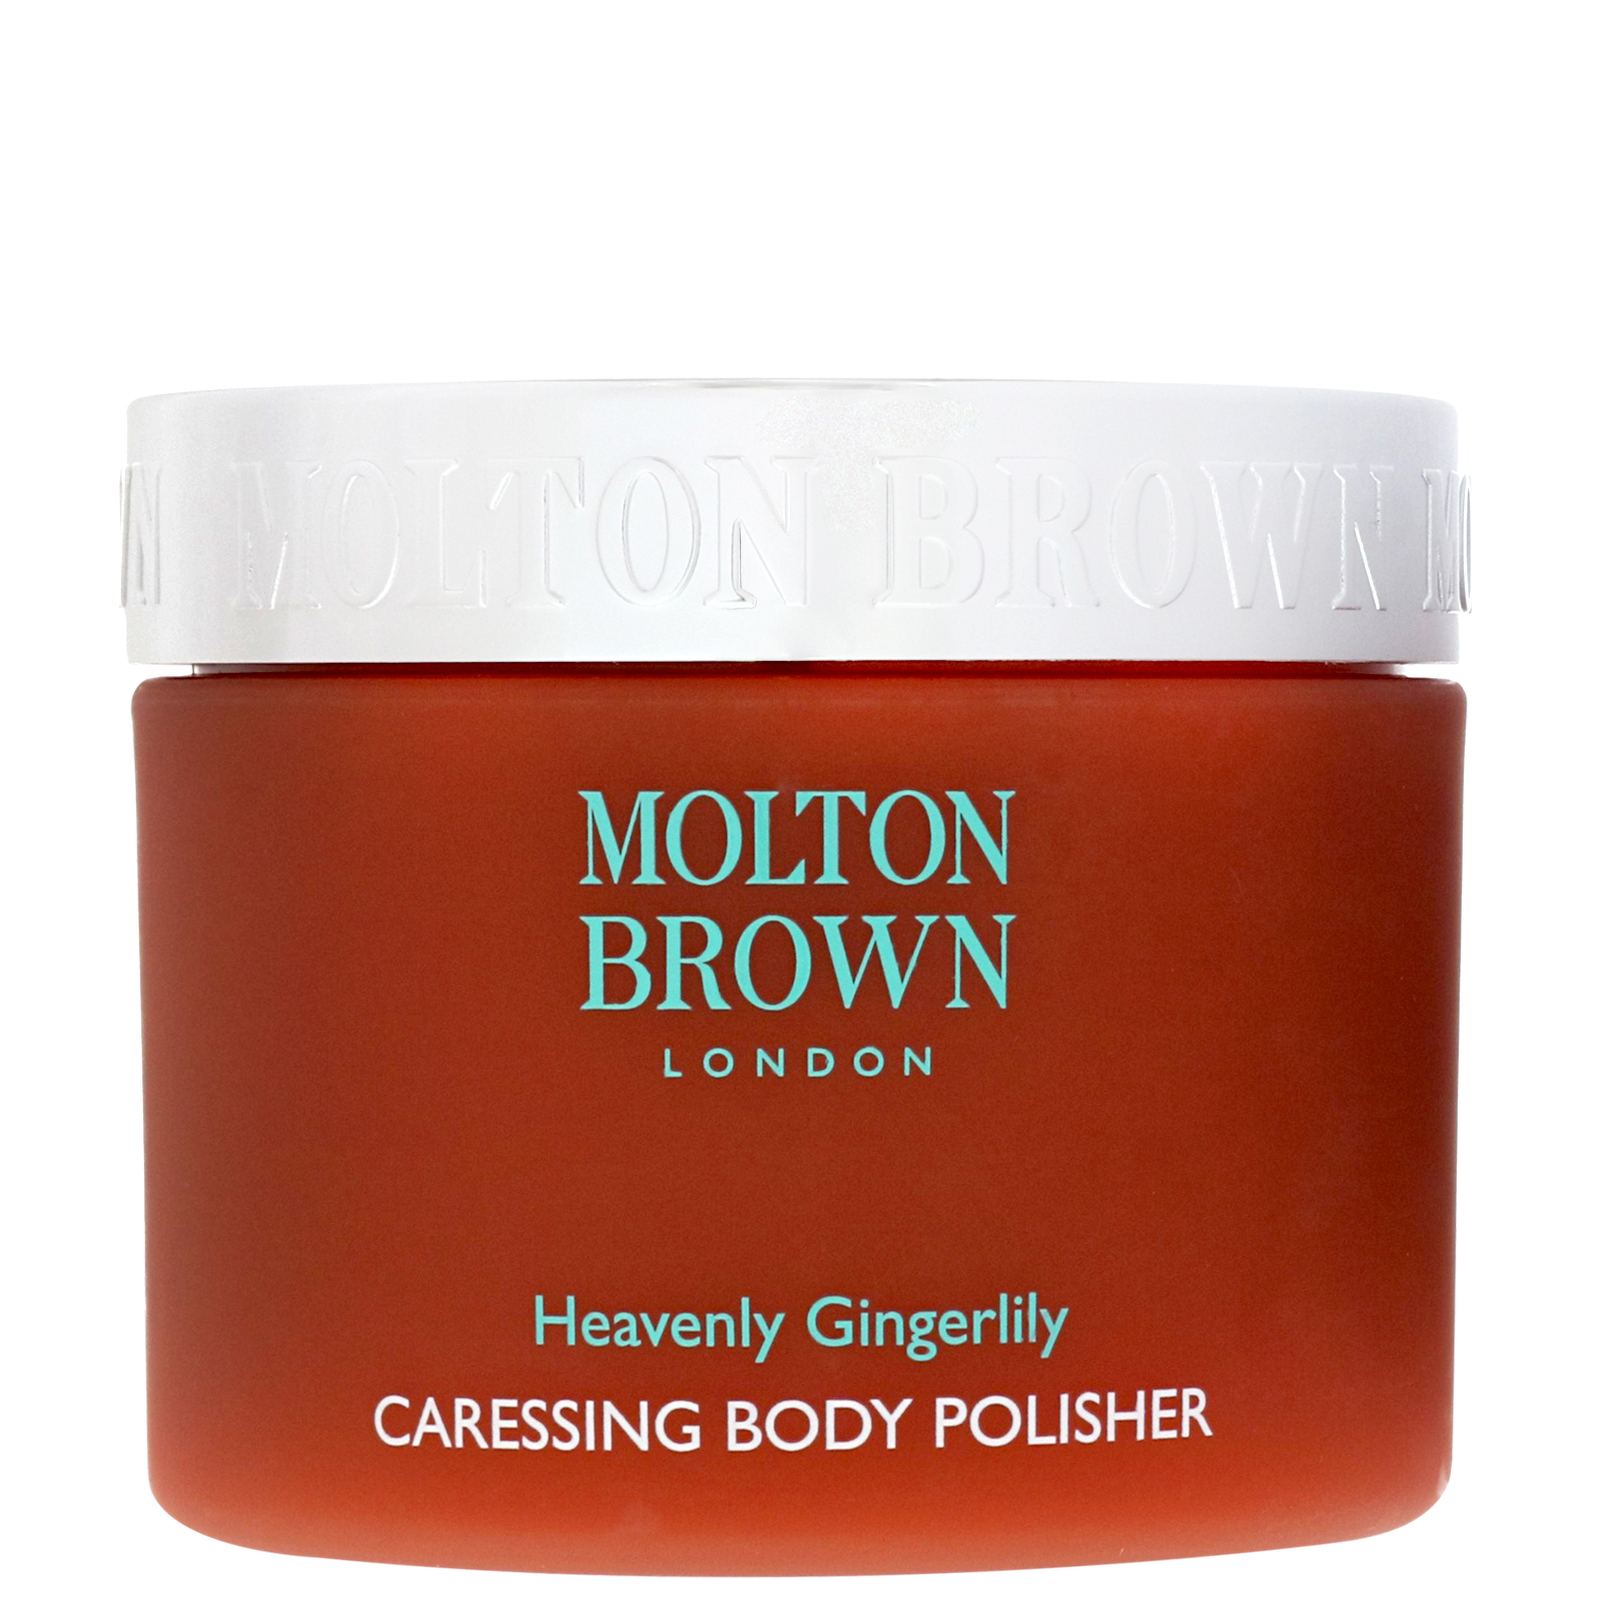 Molton Brown Heavenly Gingerlily Caressing Body Polisher 275g